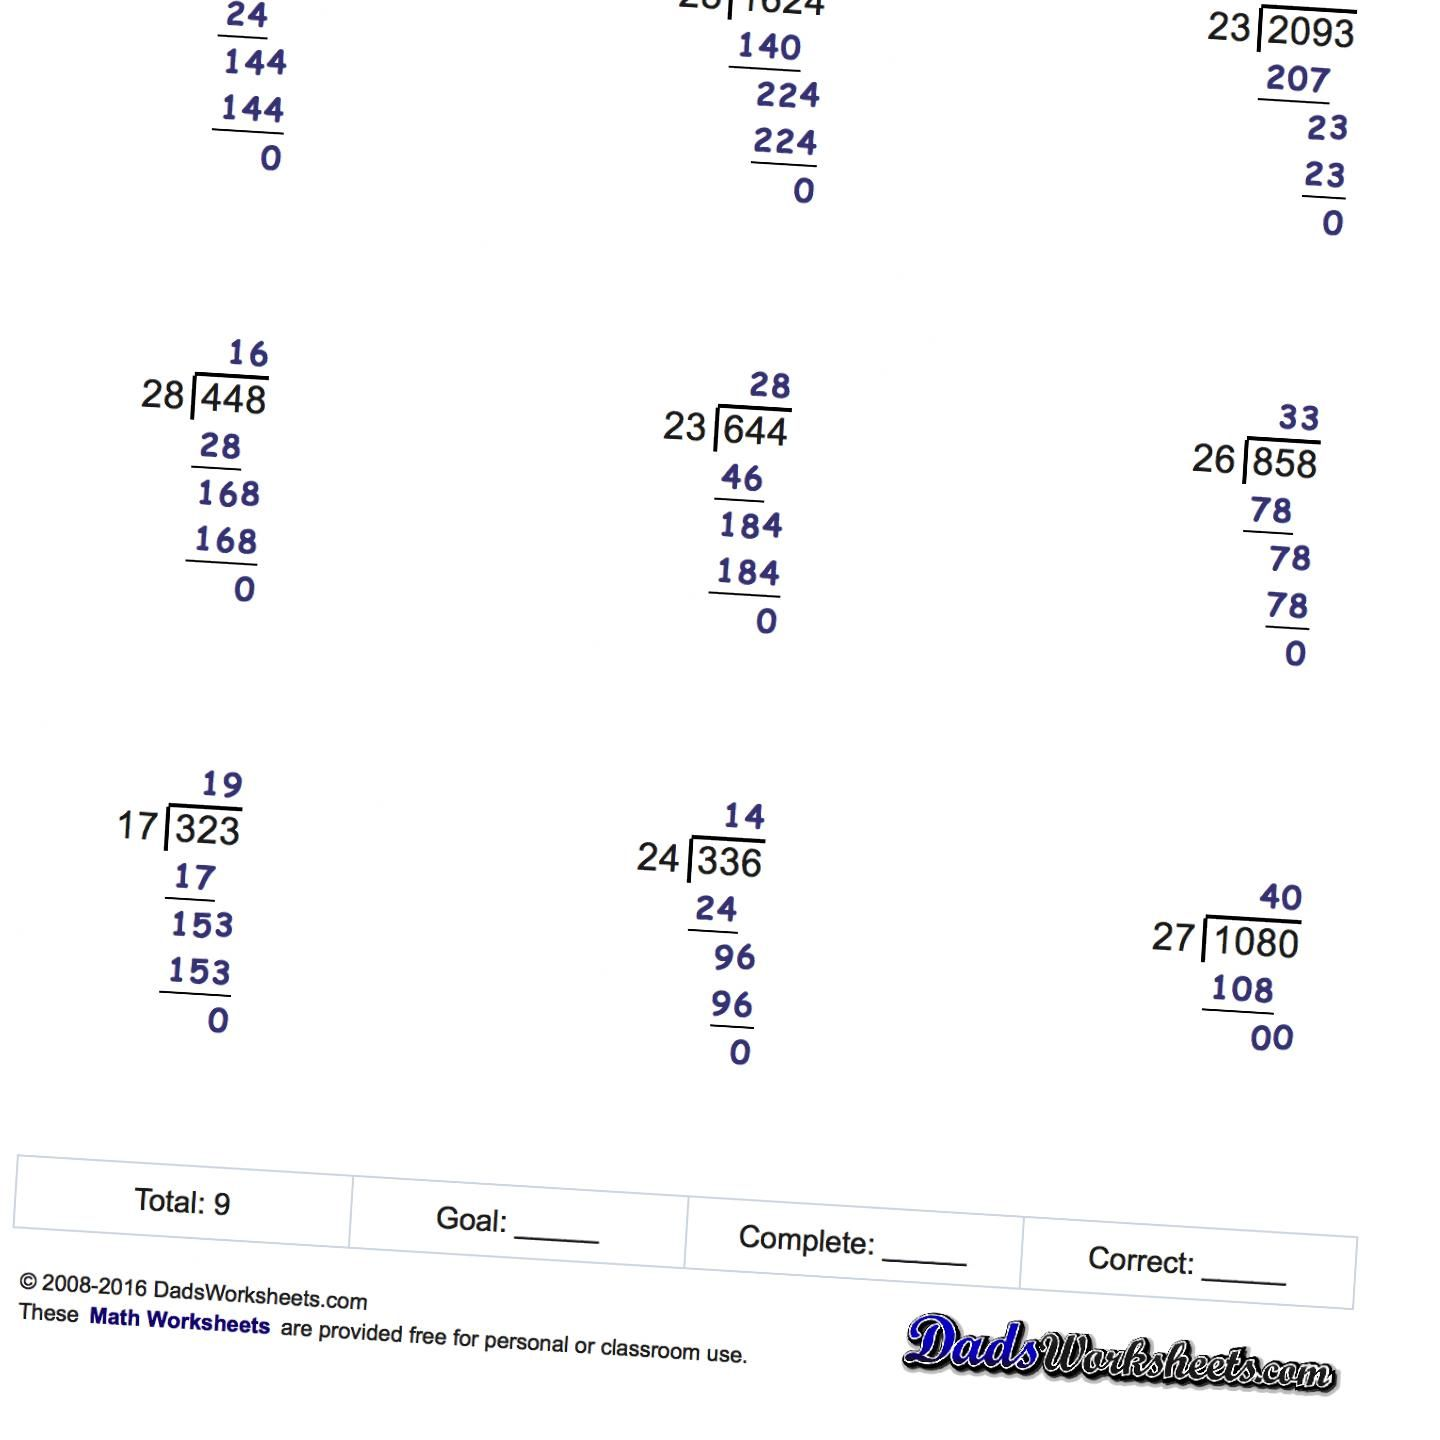 Long Division Worksheets, printable with answer keys that show all ...